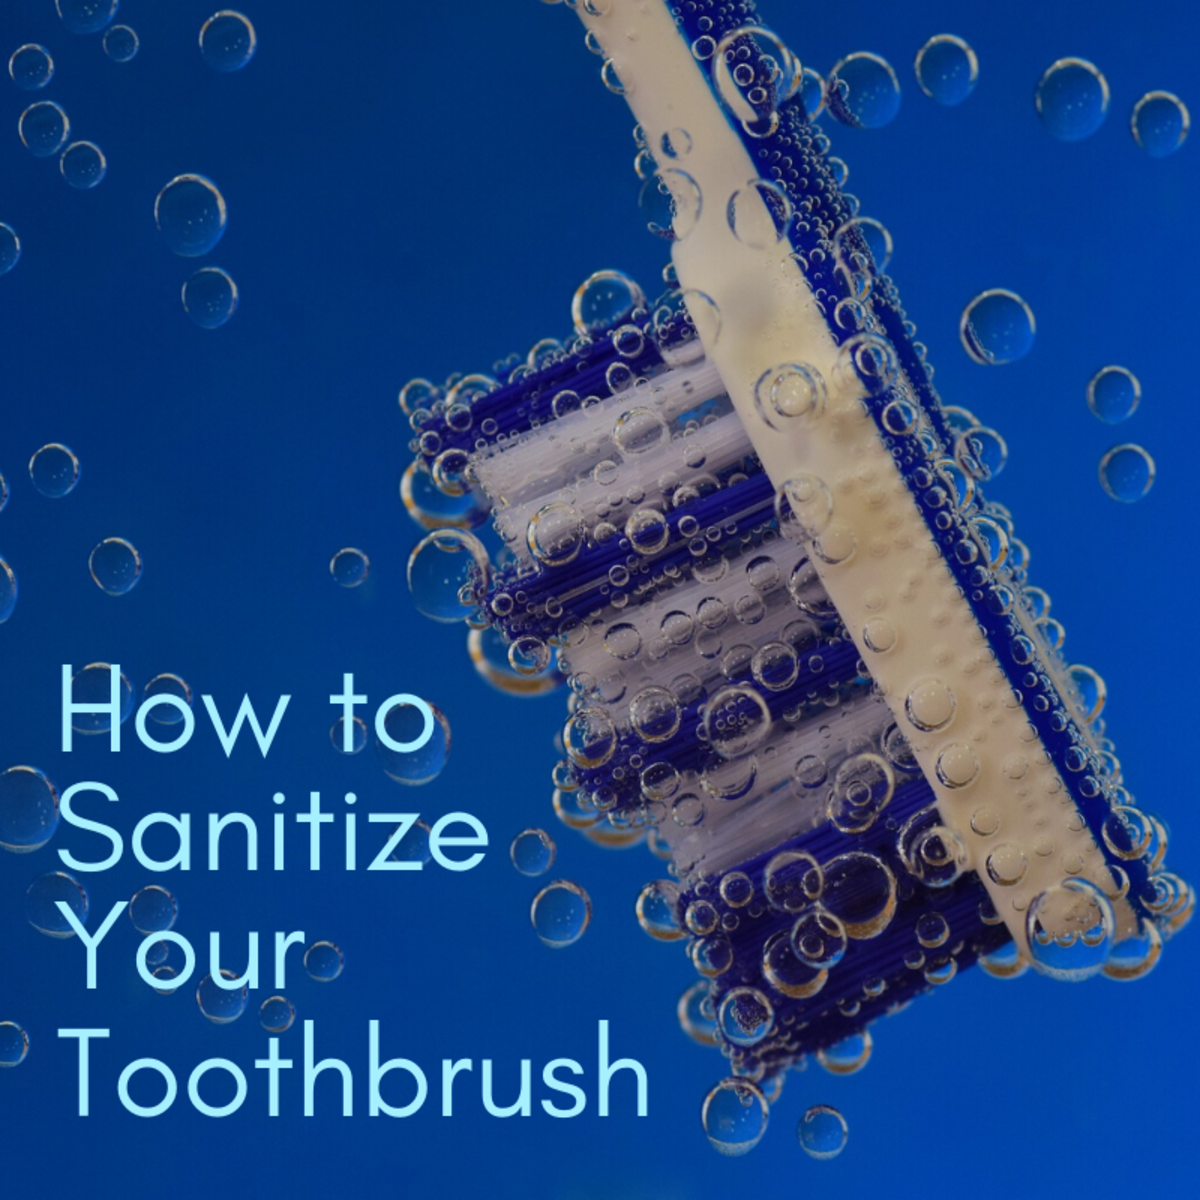 How to Sanitize and Disinfect a Toothbrush